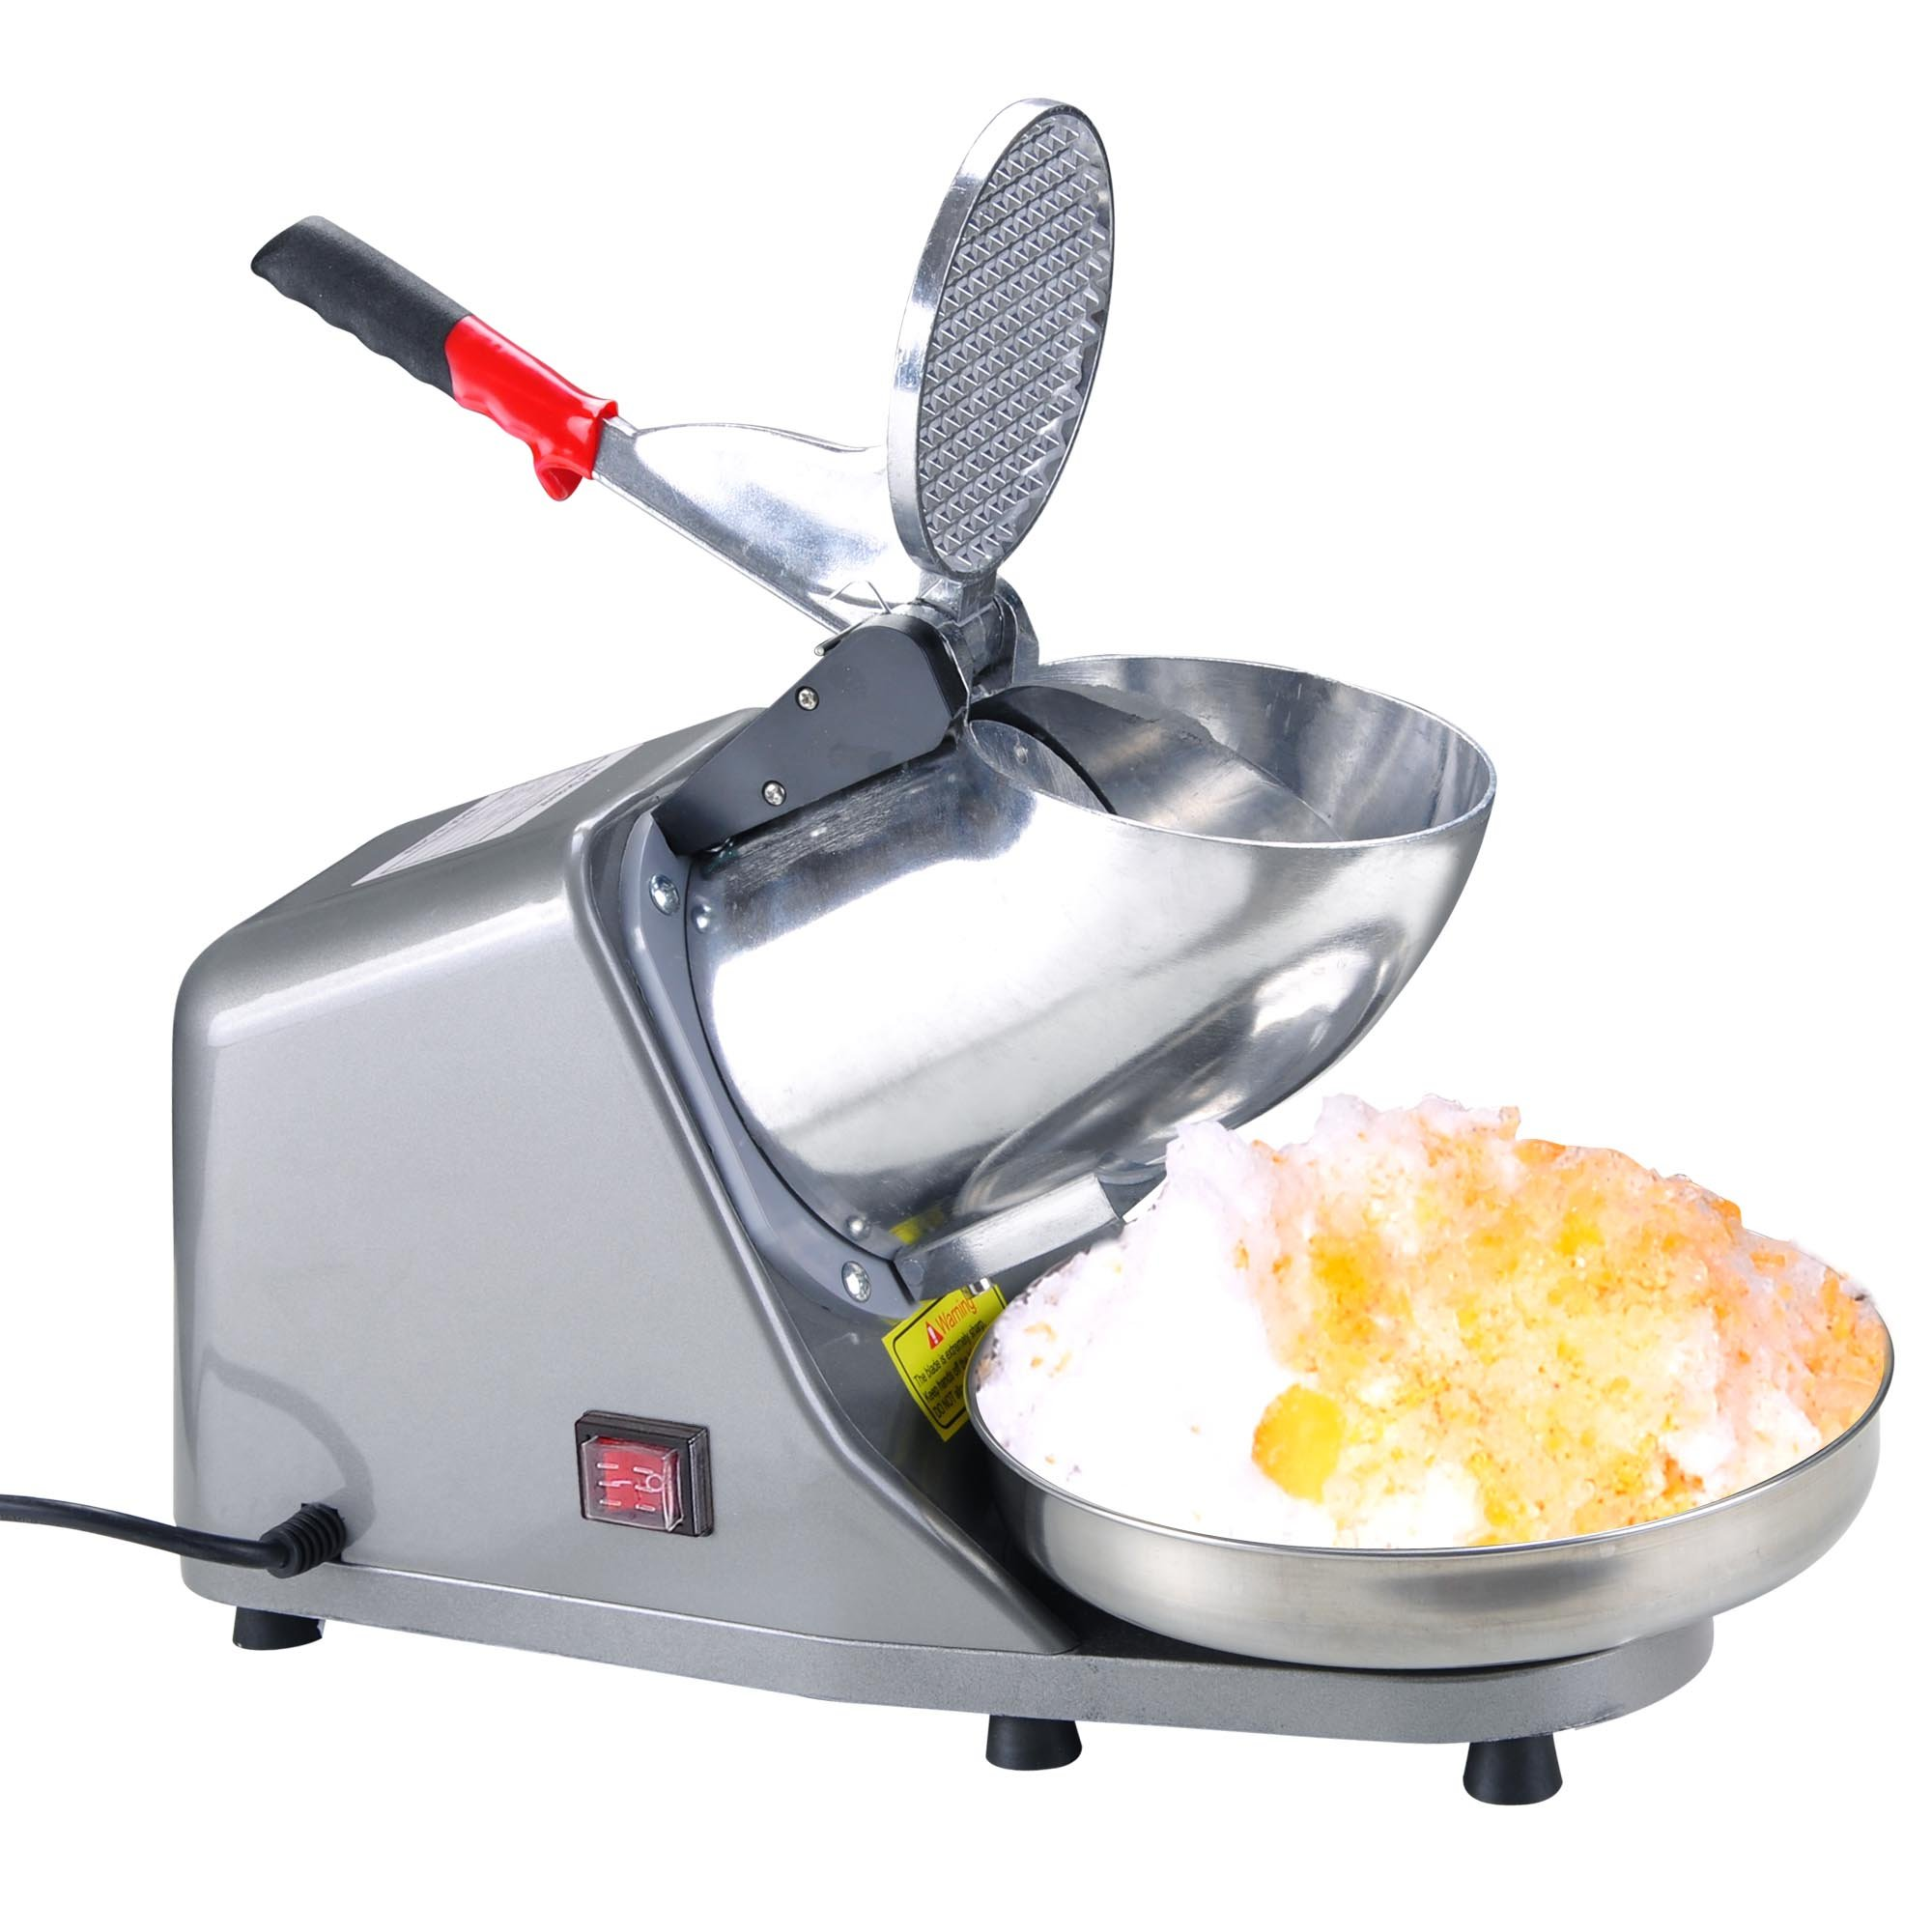 Yescom 300W Electric Ice Shaver Snow Cone Maker Shaving Crusher Machine 1450 r/min 143 lbs/hr by Yescom